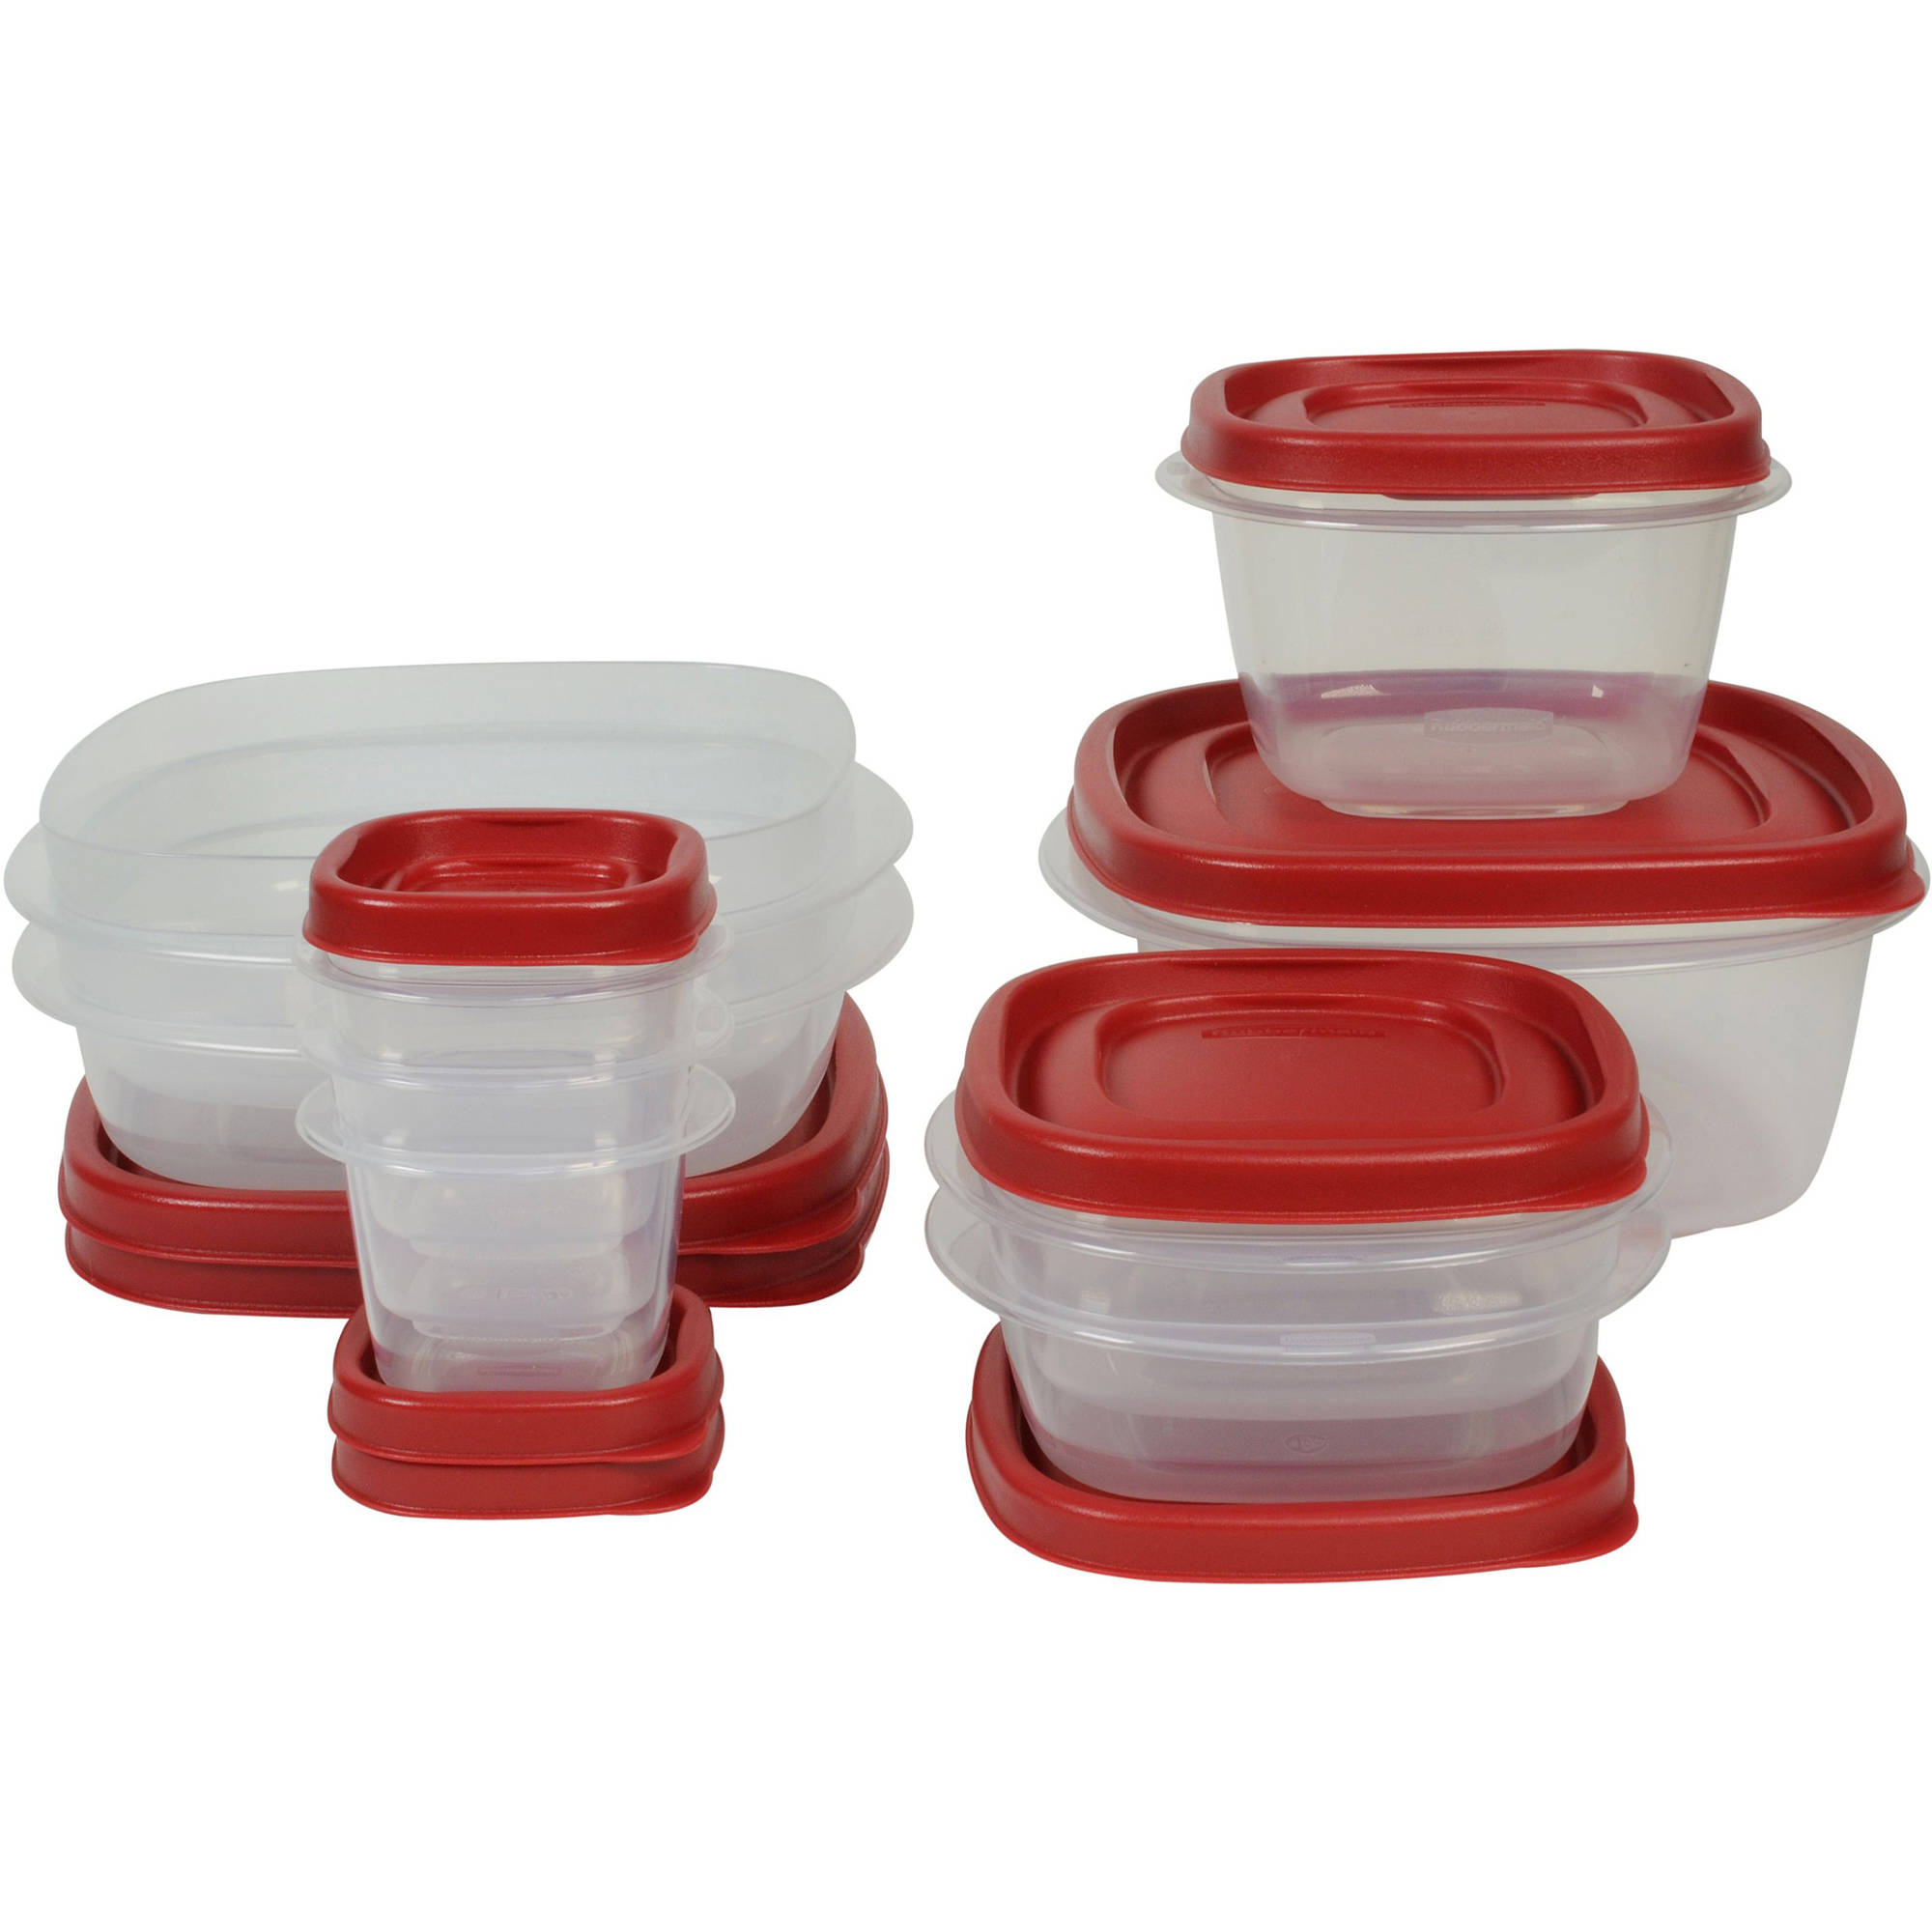 Rubbermaid Easy Find Lids Food Storage Container Set, 18-Piece